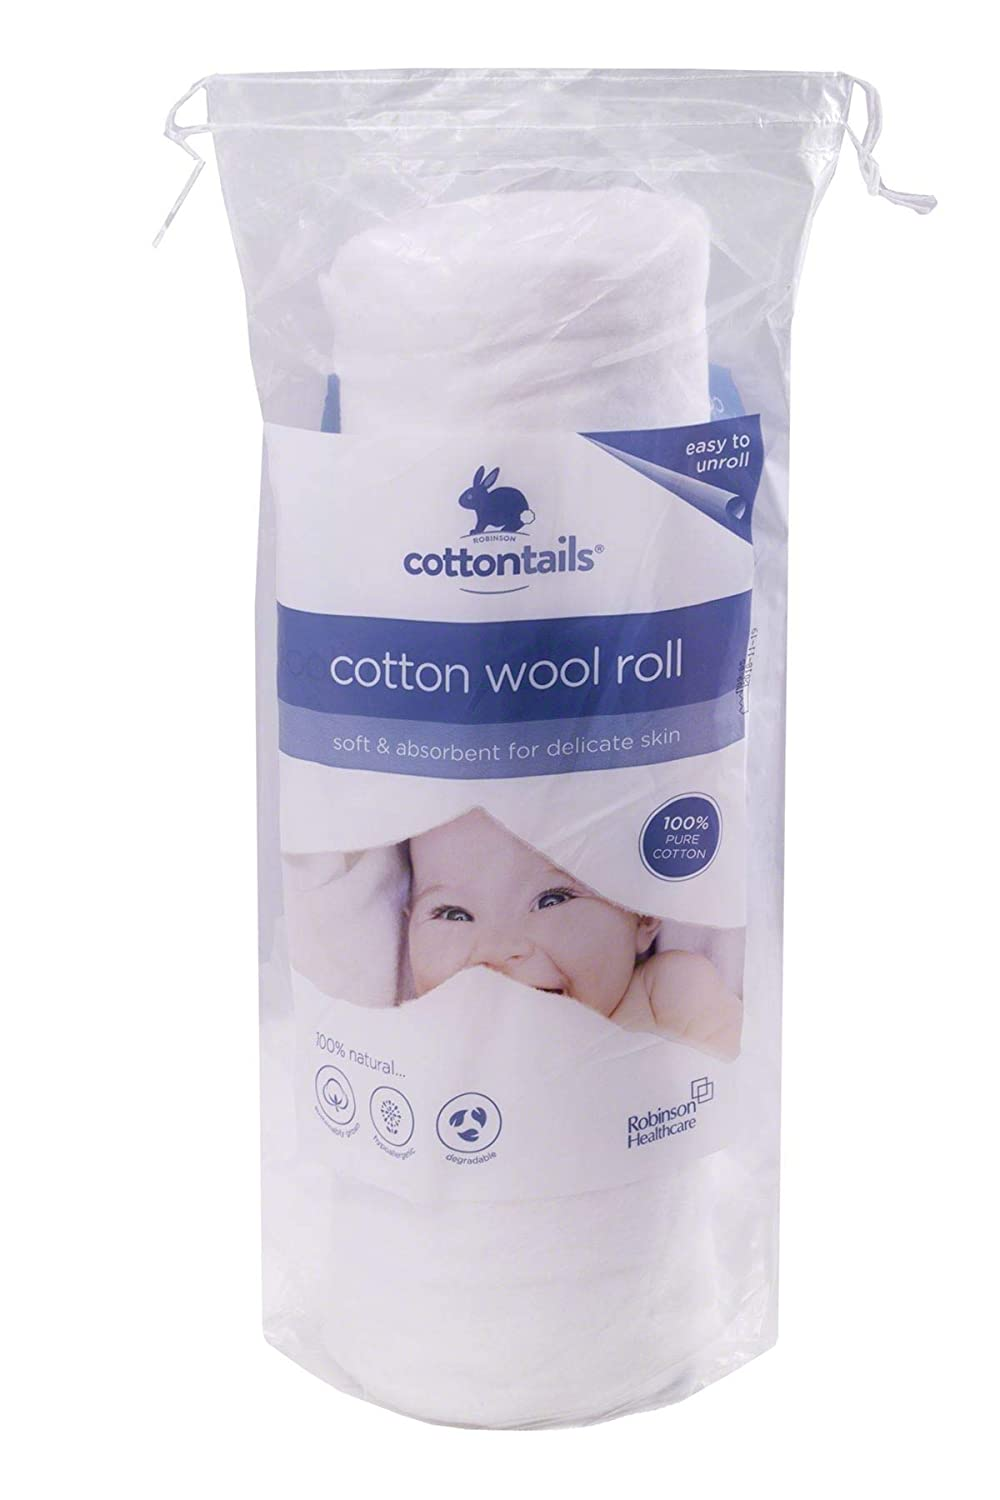 Cottontails 300g Cotton Wool Roll BabyCenter 3564093